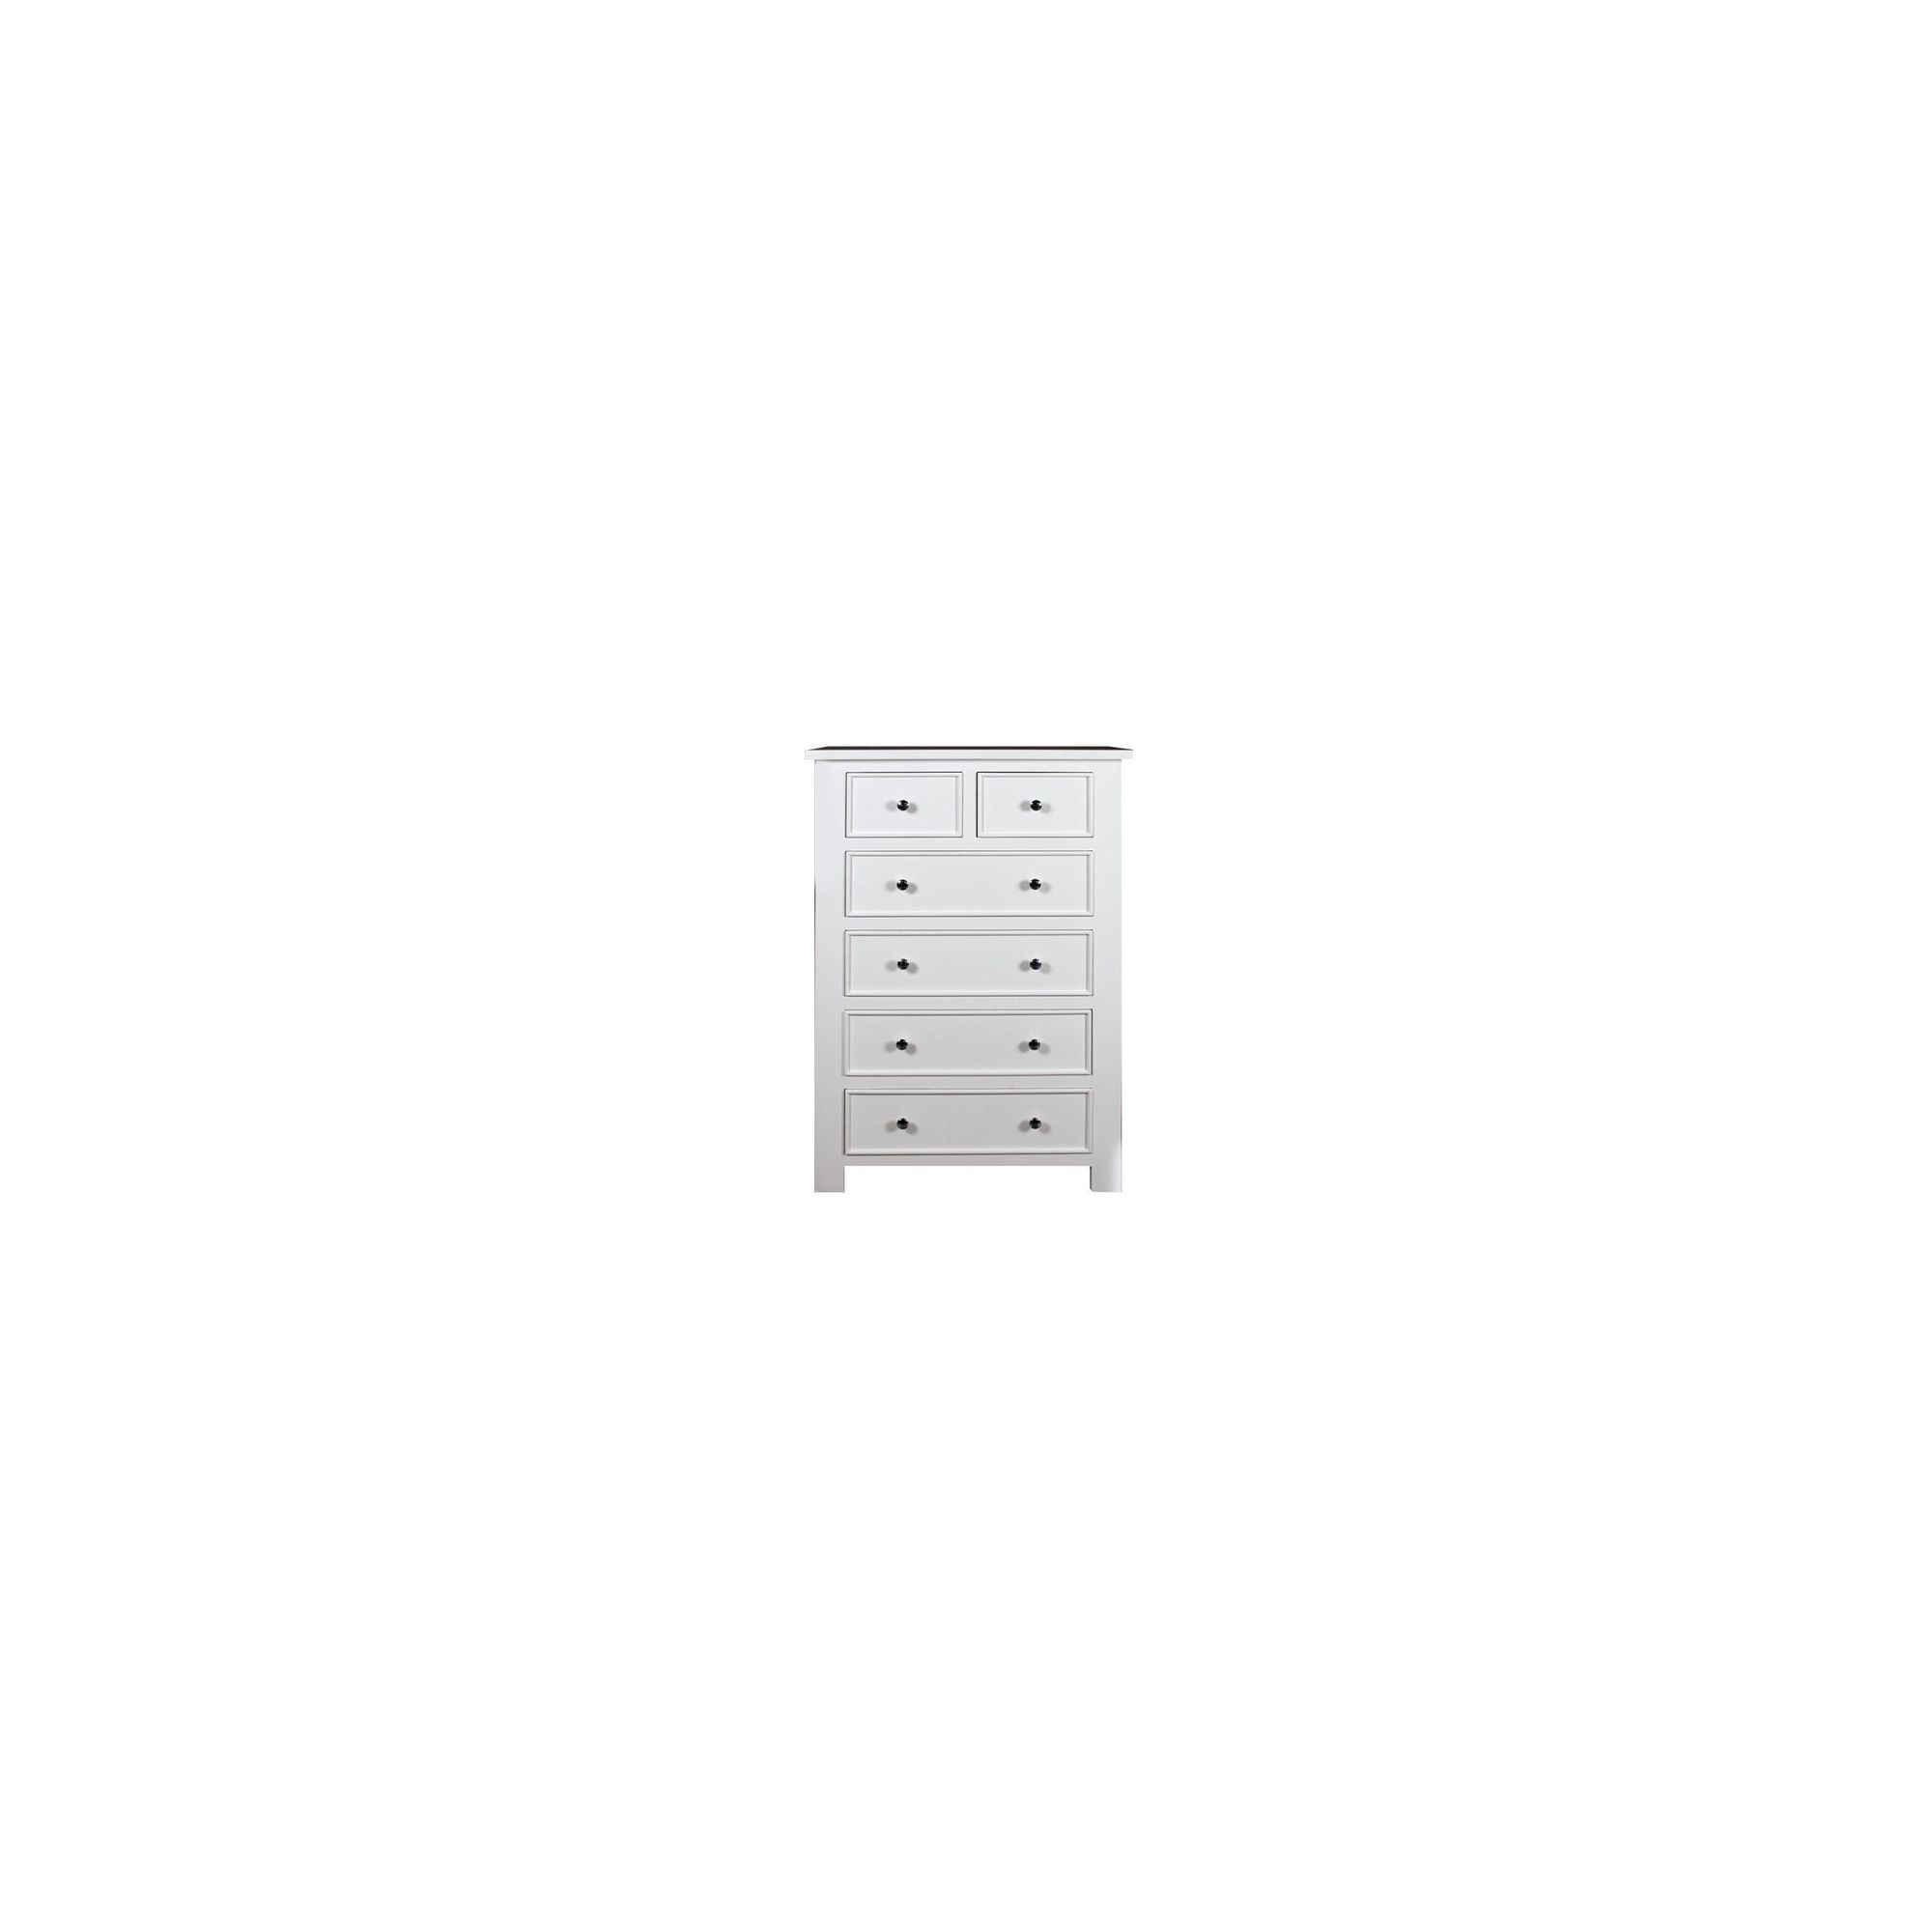 Alterton Furniture Breton 2 over 4 Drawer Chest at Tesco Direct